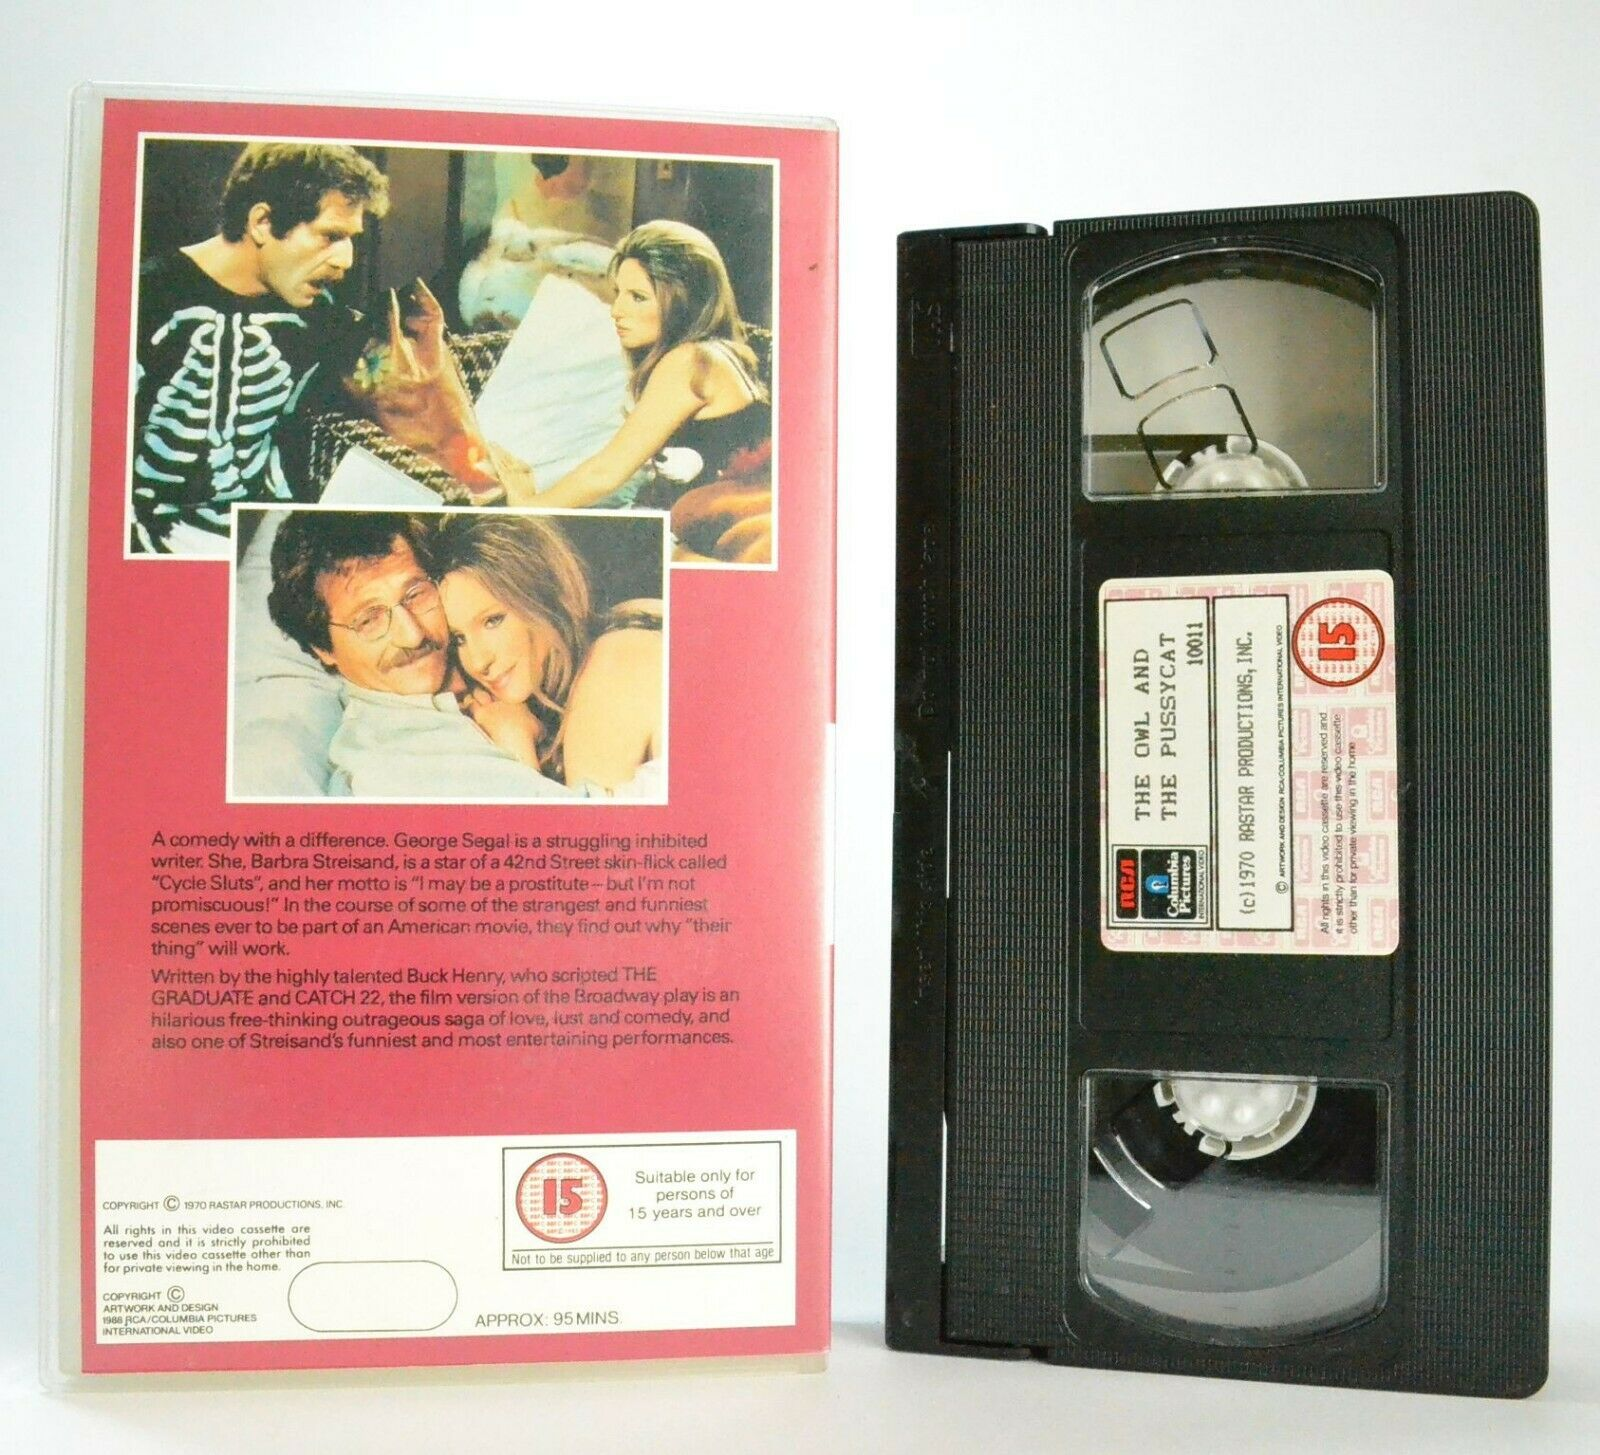 The Owl And The Pussycat: Romantic Comedy (1970) - B.Streisand/G.Segal - Pal VHS